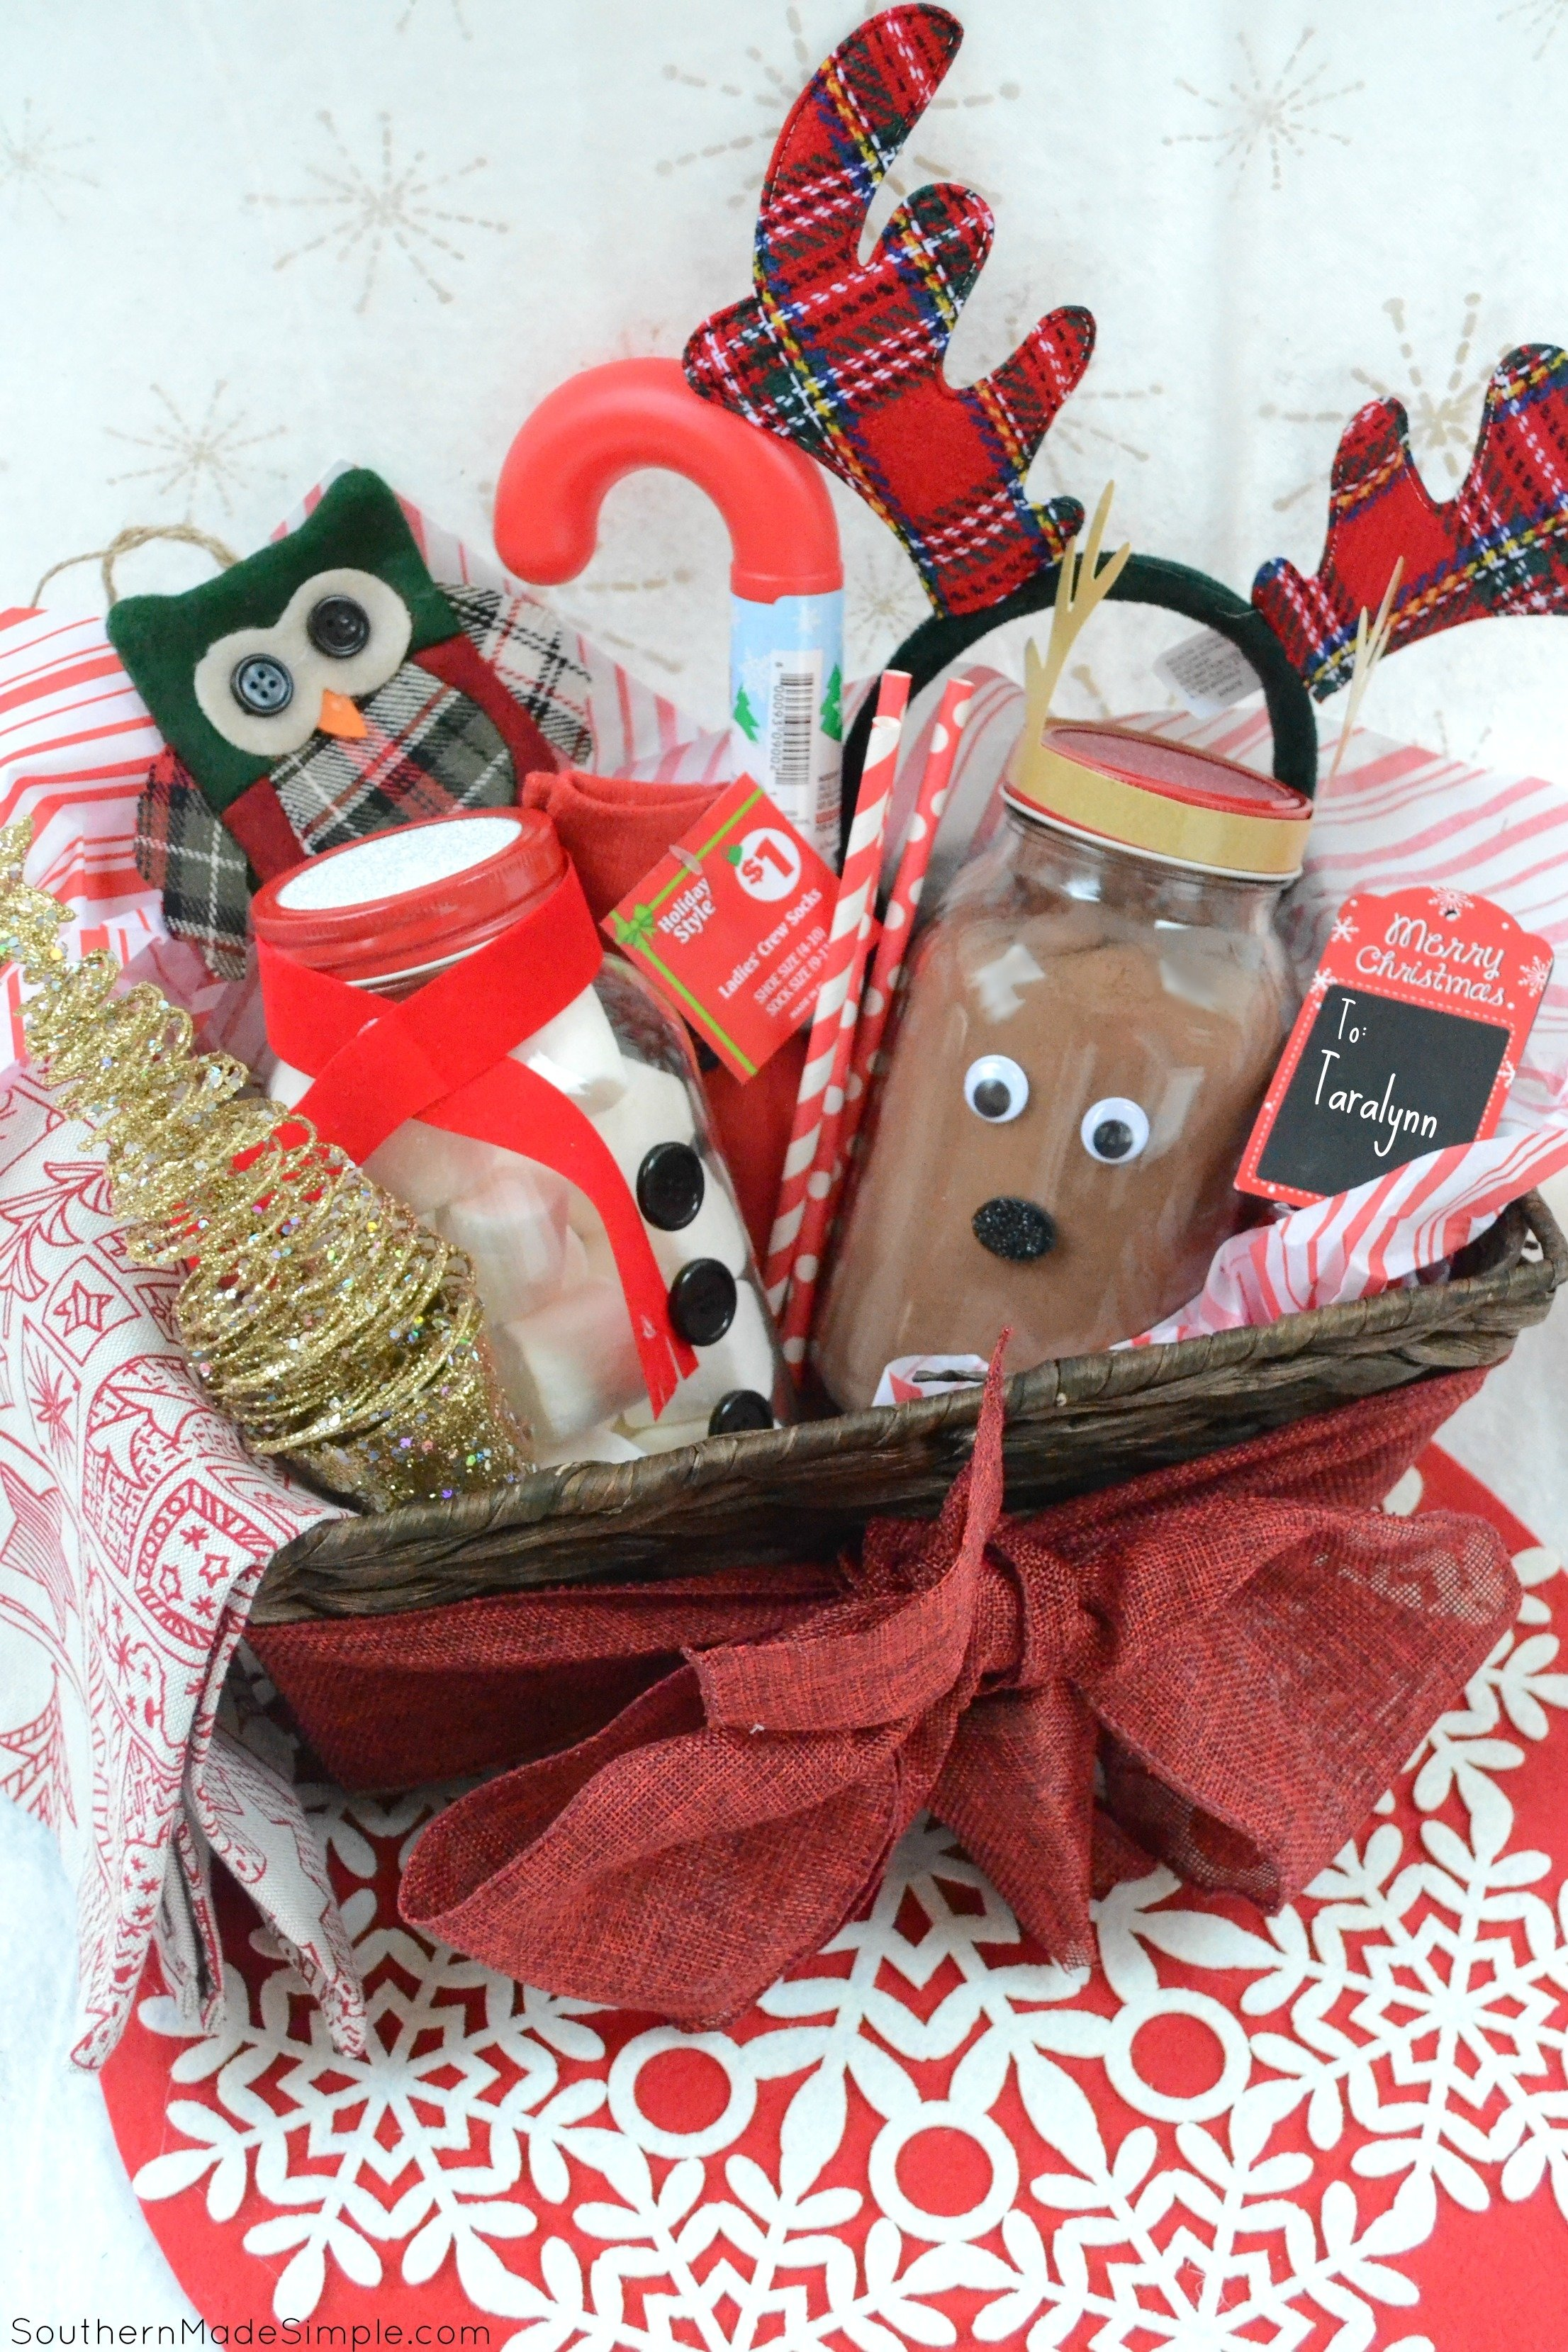 10 Great Homemade Holiday Gift Basket Ideas easy holiday gift idea diy hot cocoa gift basket southern made simple 2020